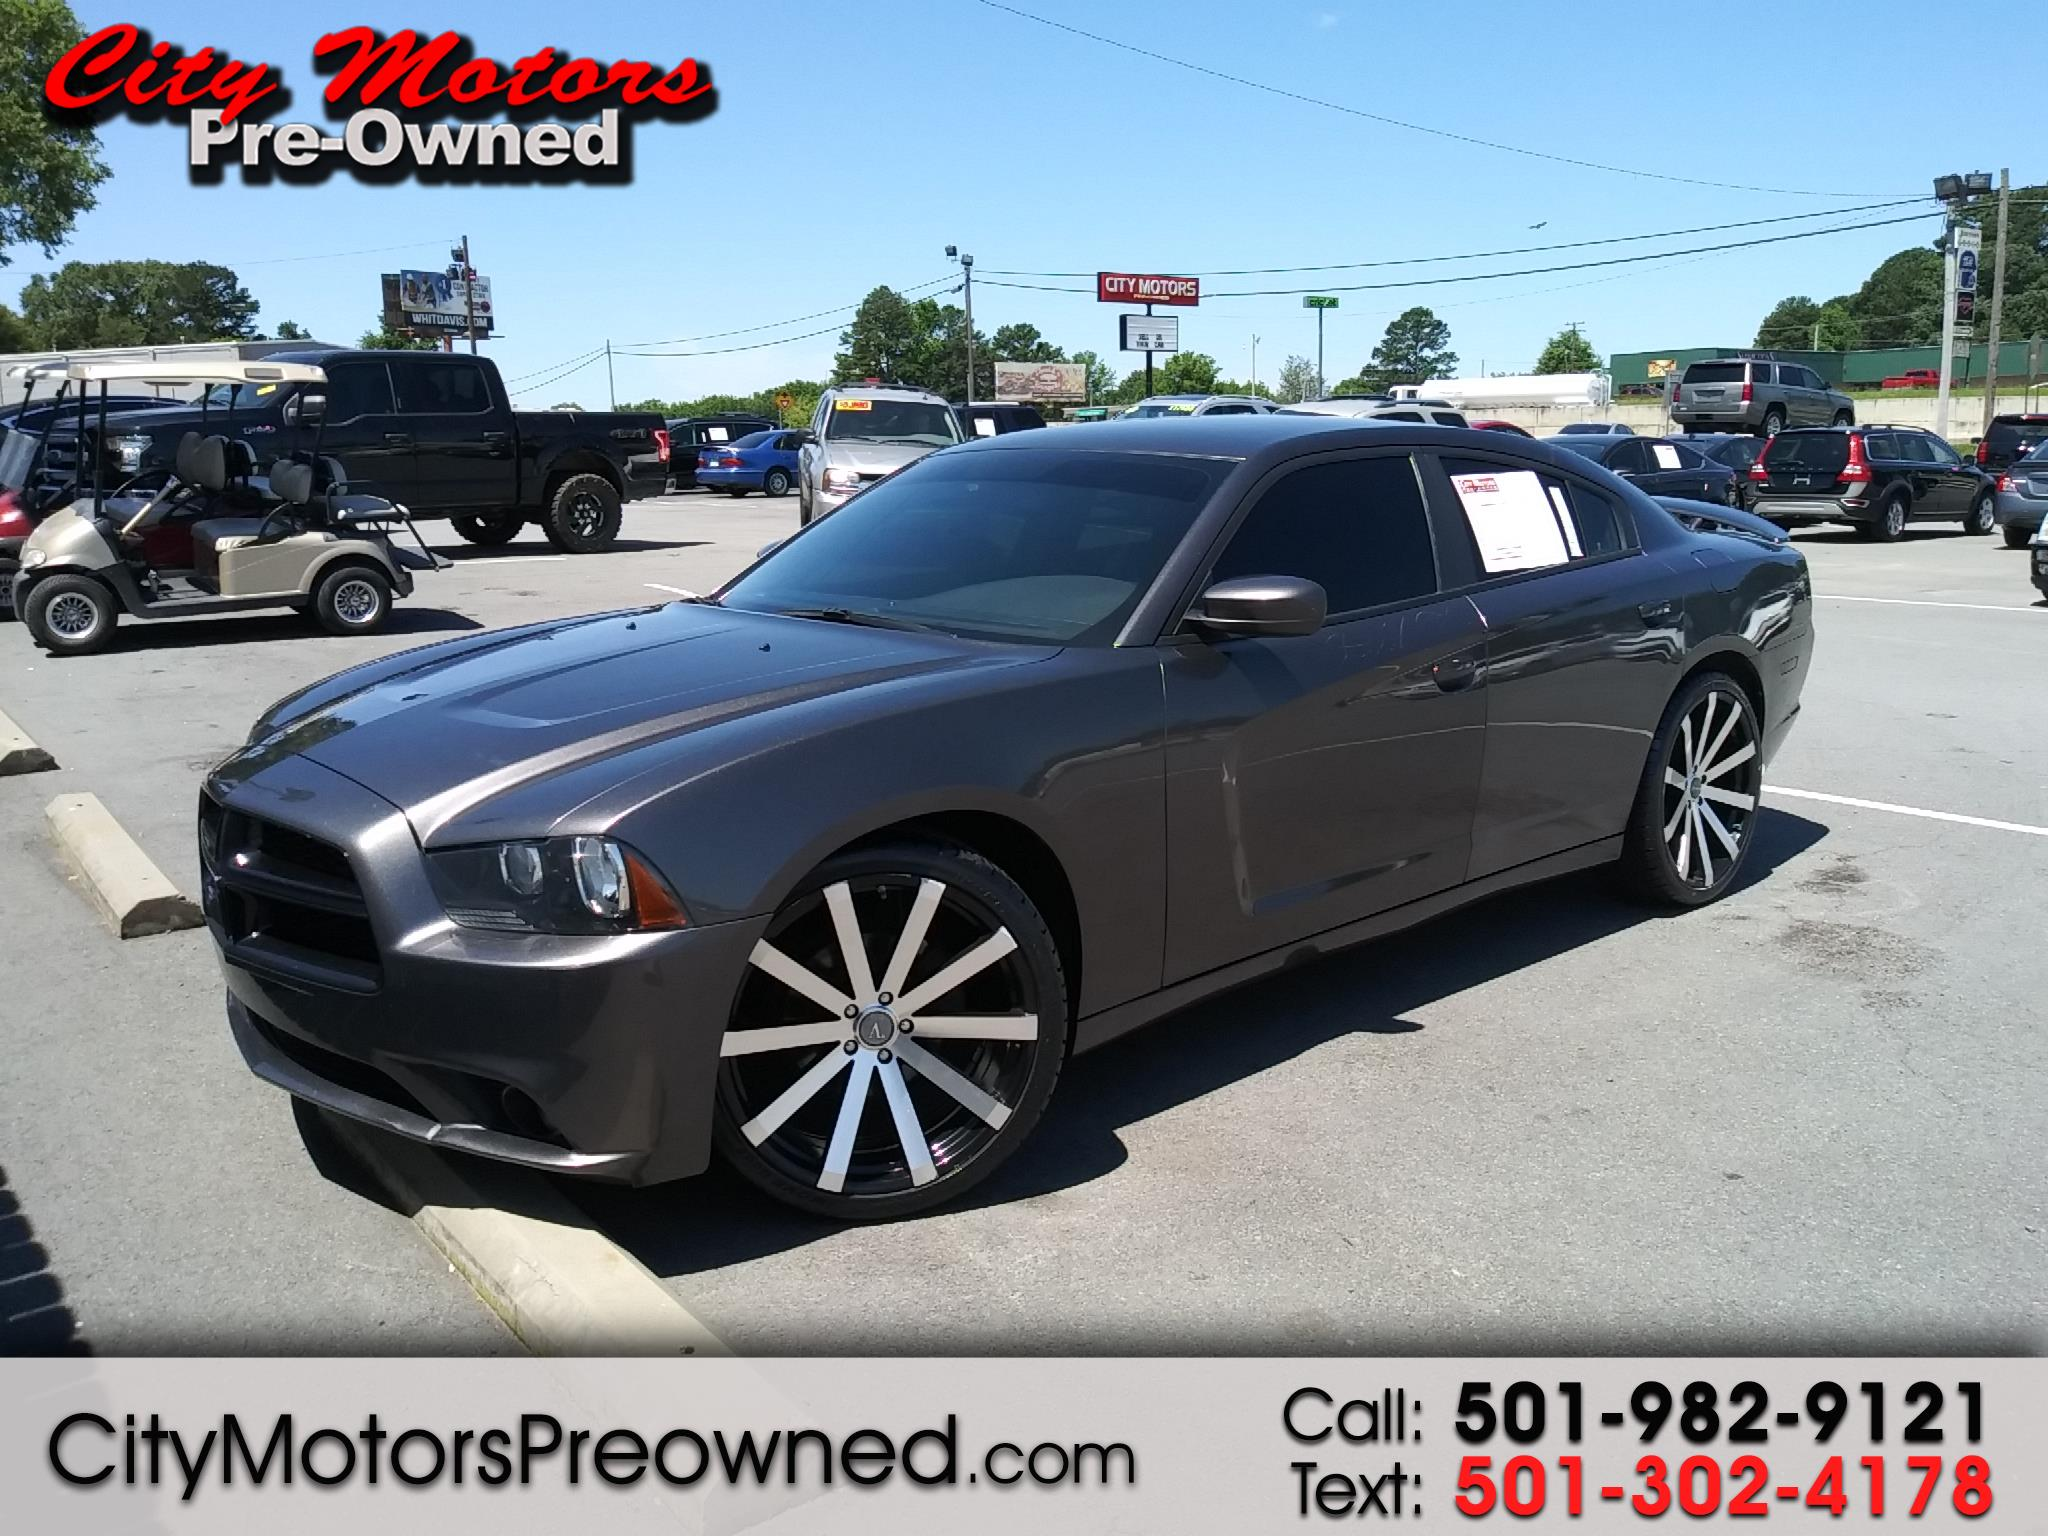 2013 Dodge Charger 4dr Sdn SXT RWD